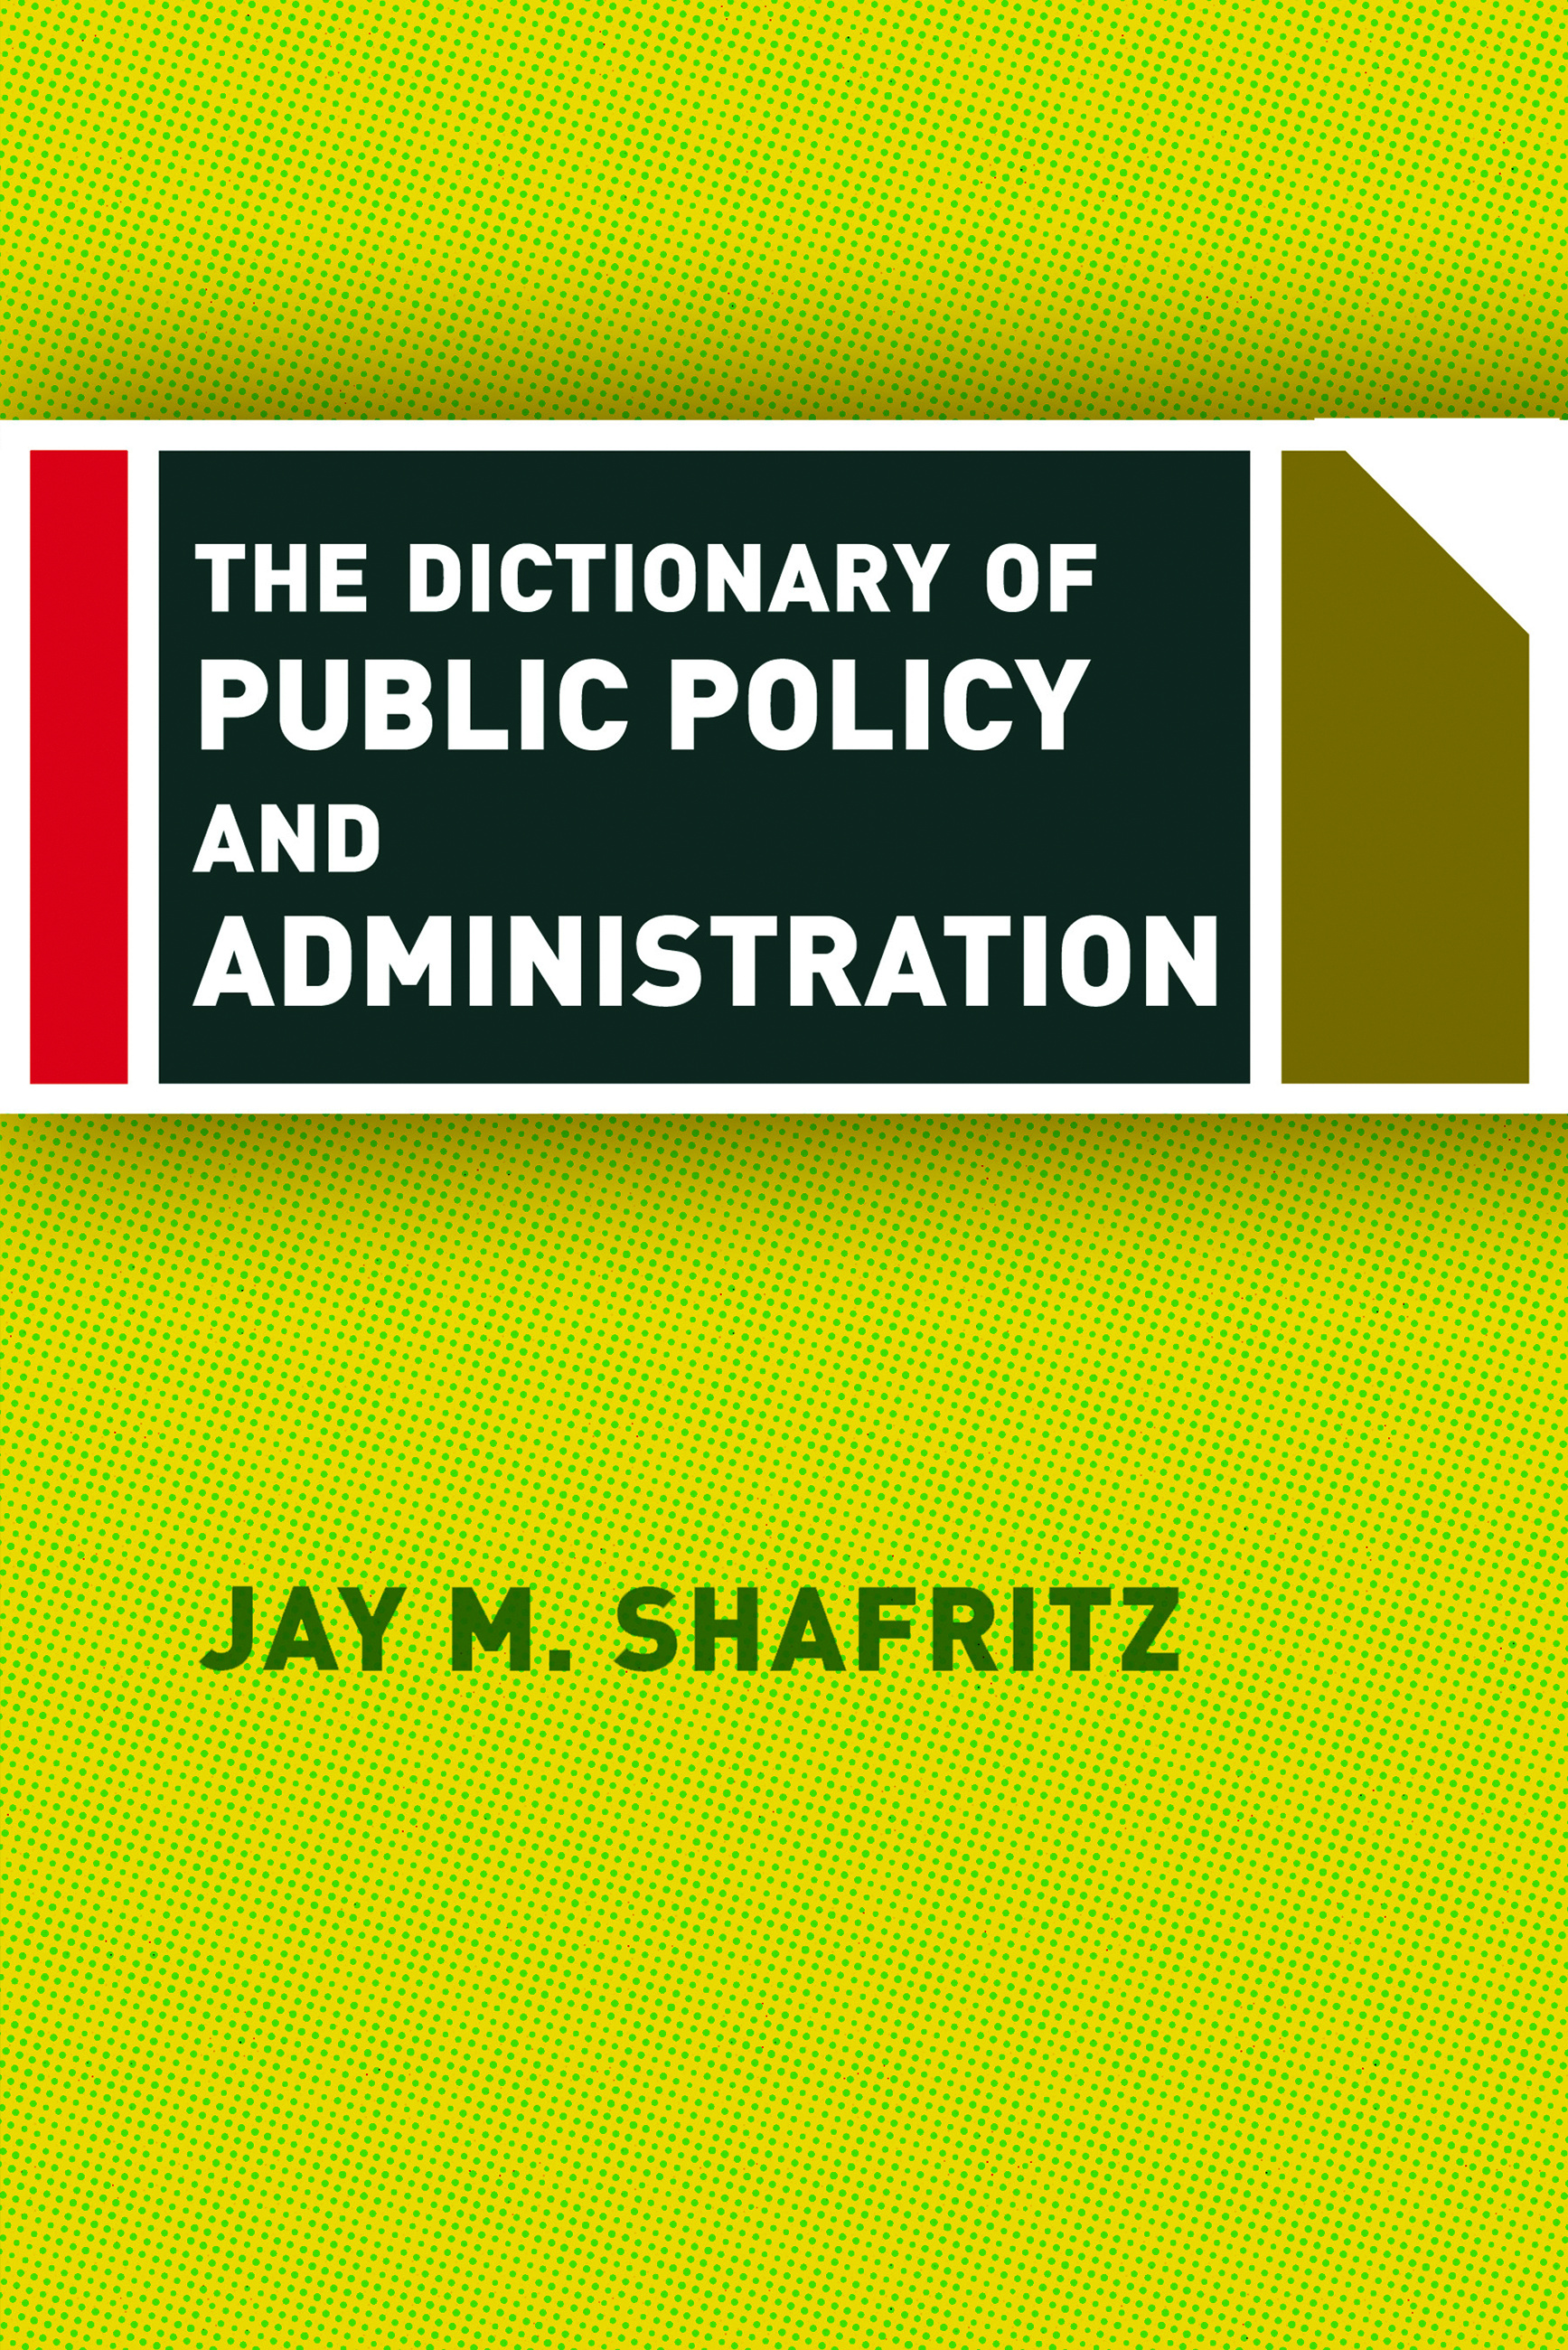 public policy and administration As the first fully online public administration school in the united states, walden's school of public policy and administration is dedicated to preparing tomorrow's public sector and nonprofit leaders to advance the public good in communities around the world.